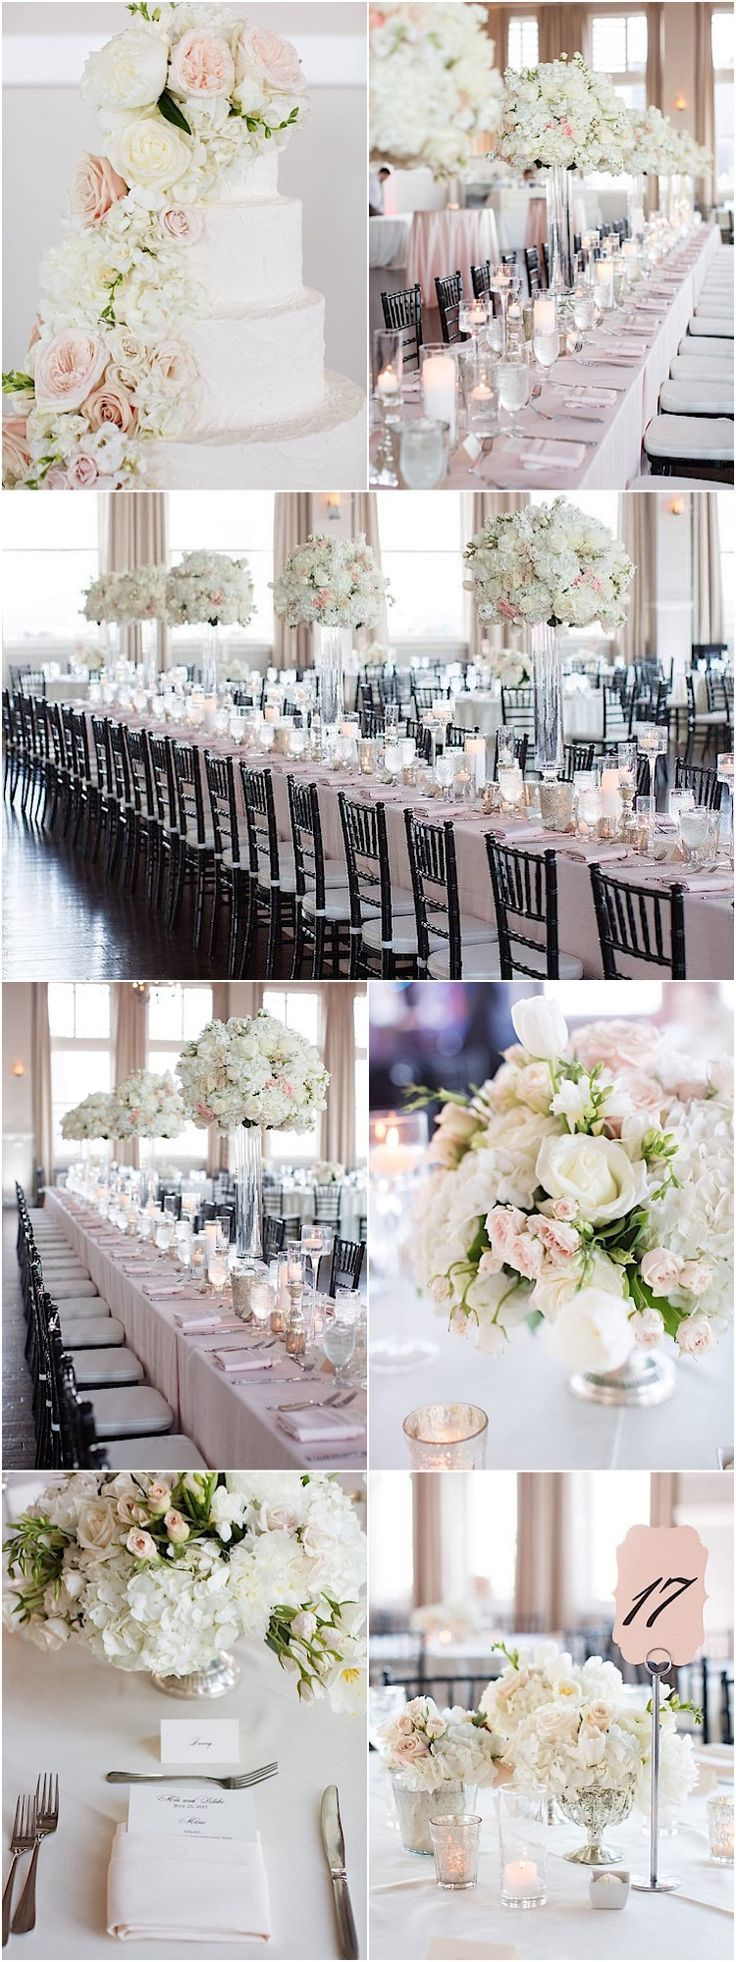 394 best Wedding Themes images on Pinterest | Wedding ideas, Color ...